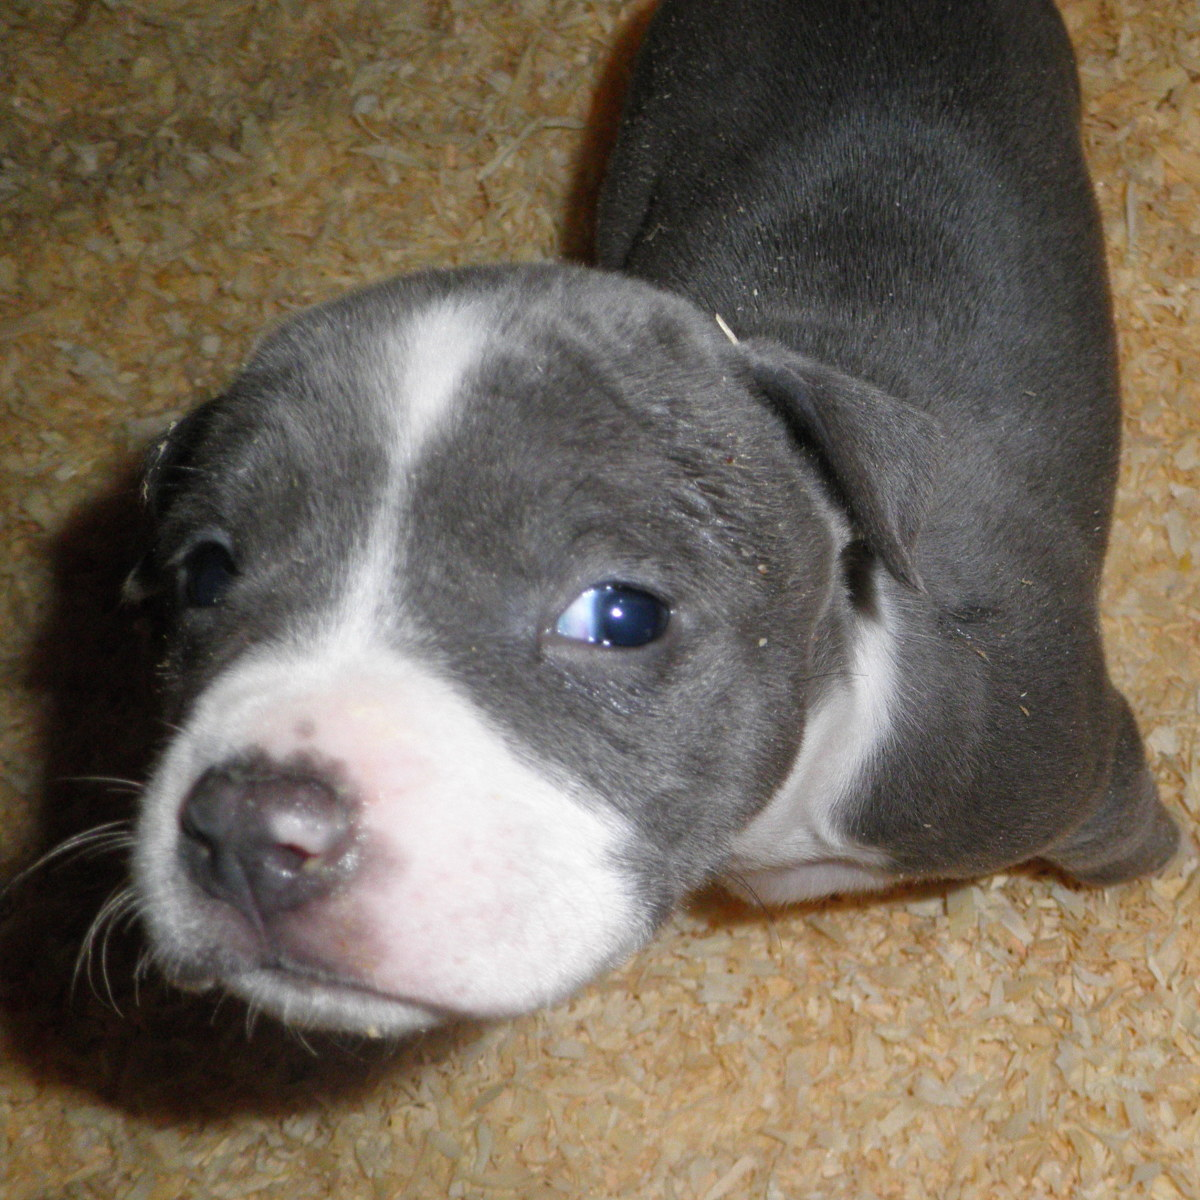 An American Blue-Nose Staffordshire Terrier puppy aka a Pit-Bull dog